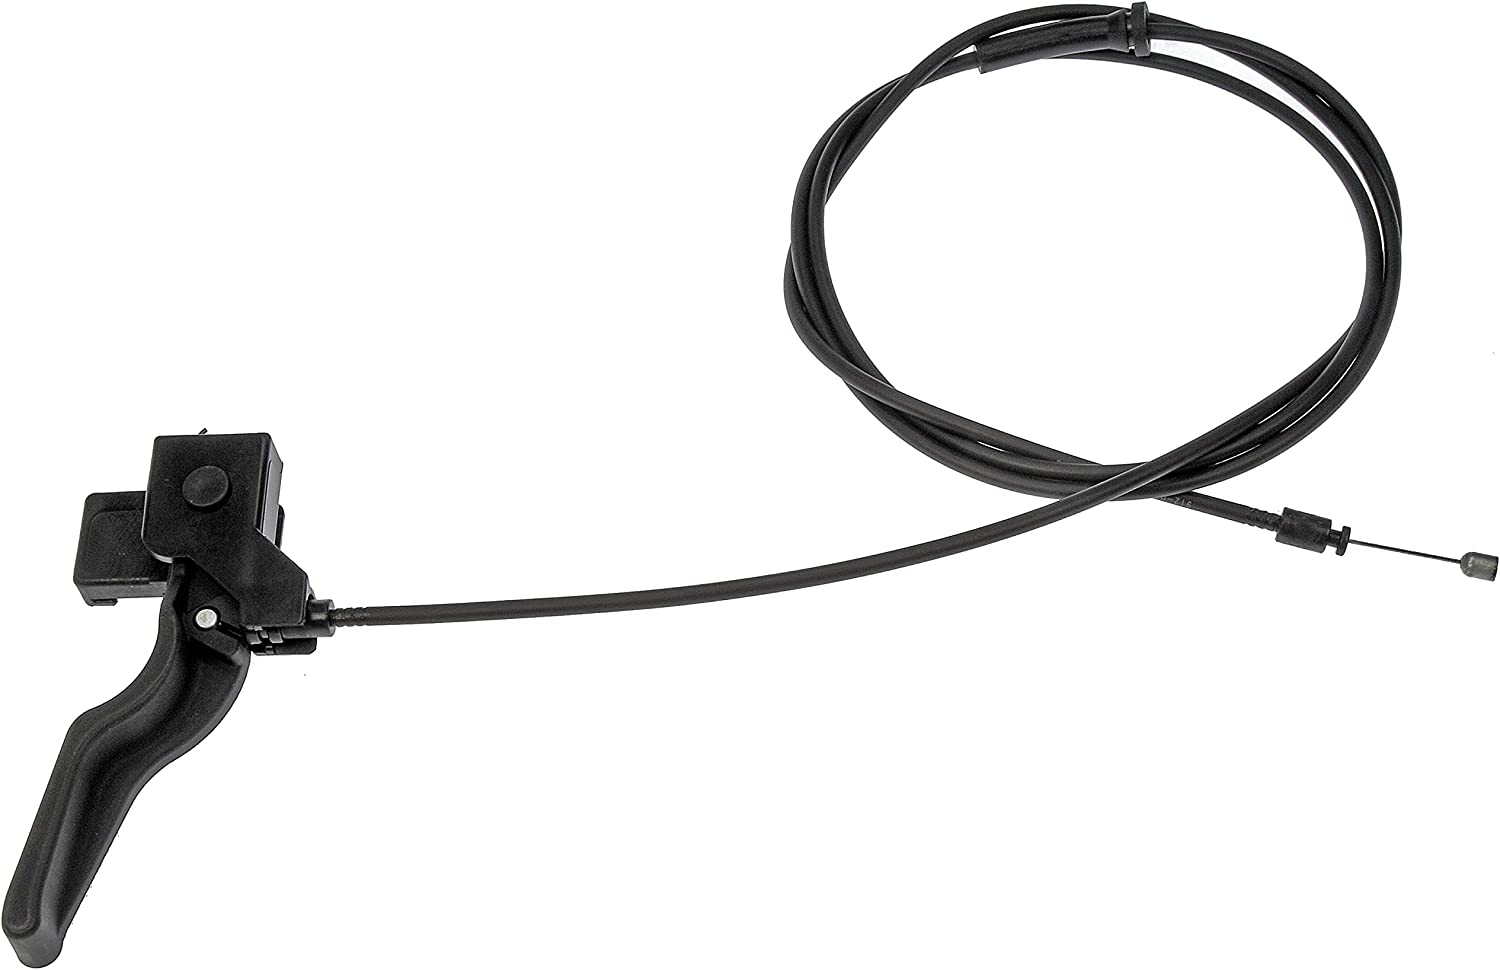 Hood Release Cable-Cable Hood Release Dorman 912-001